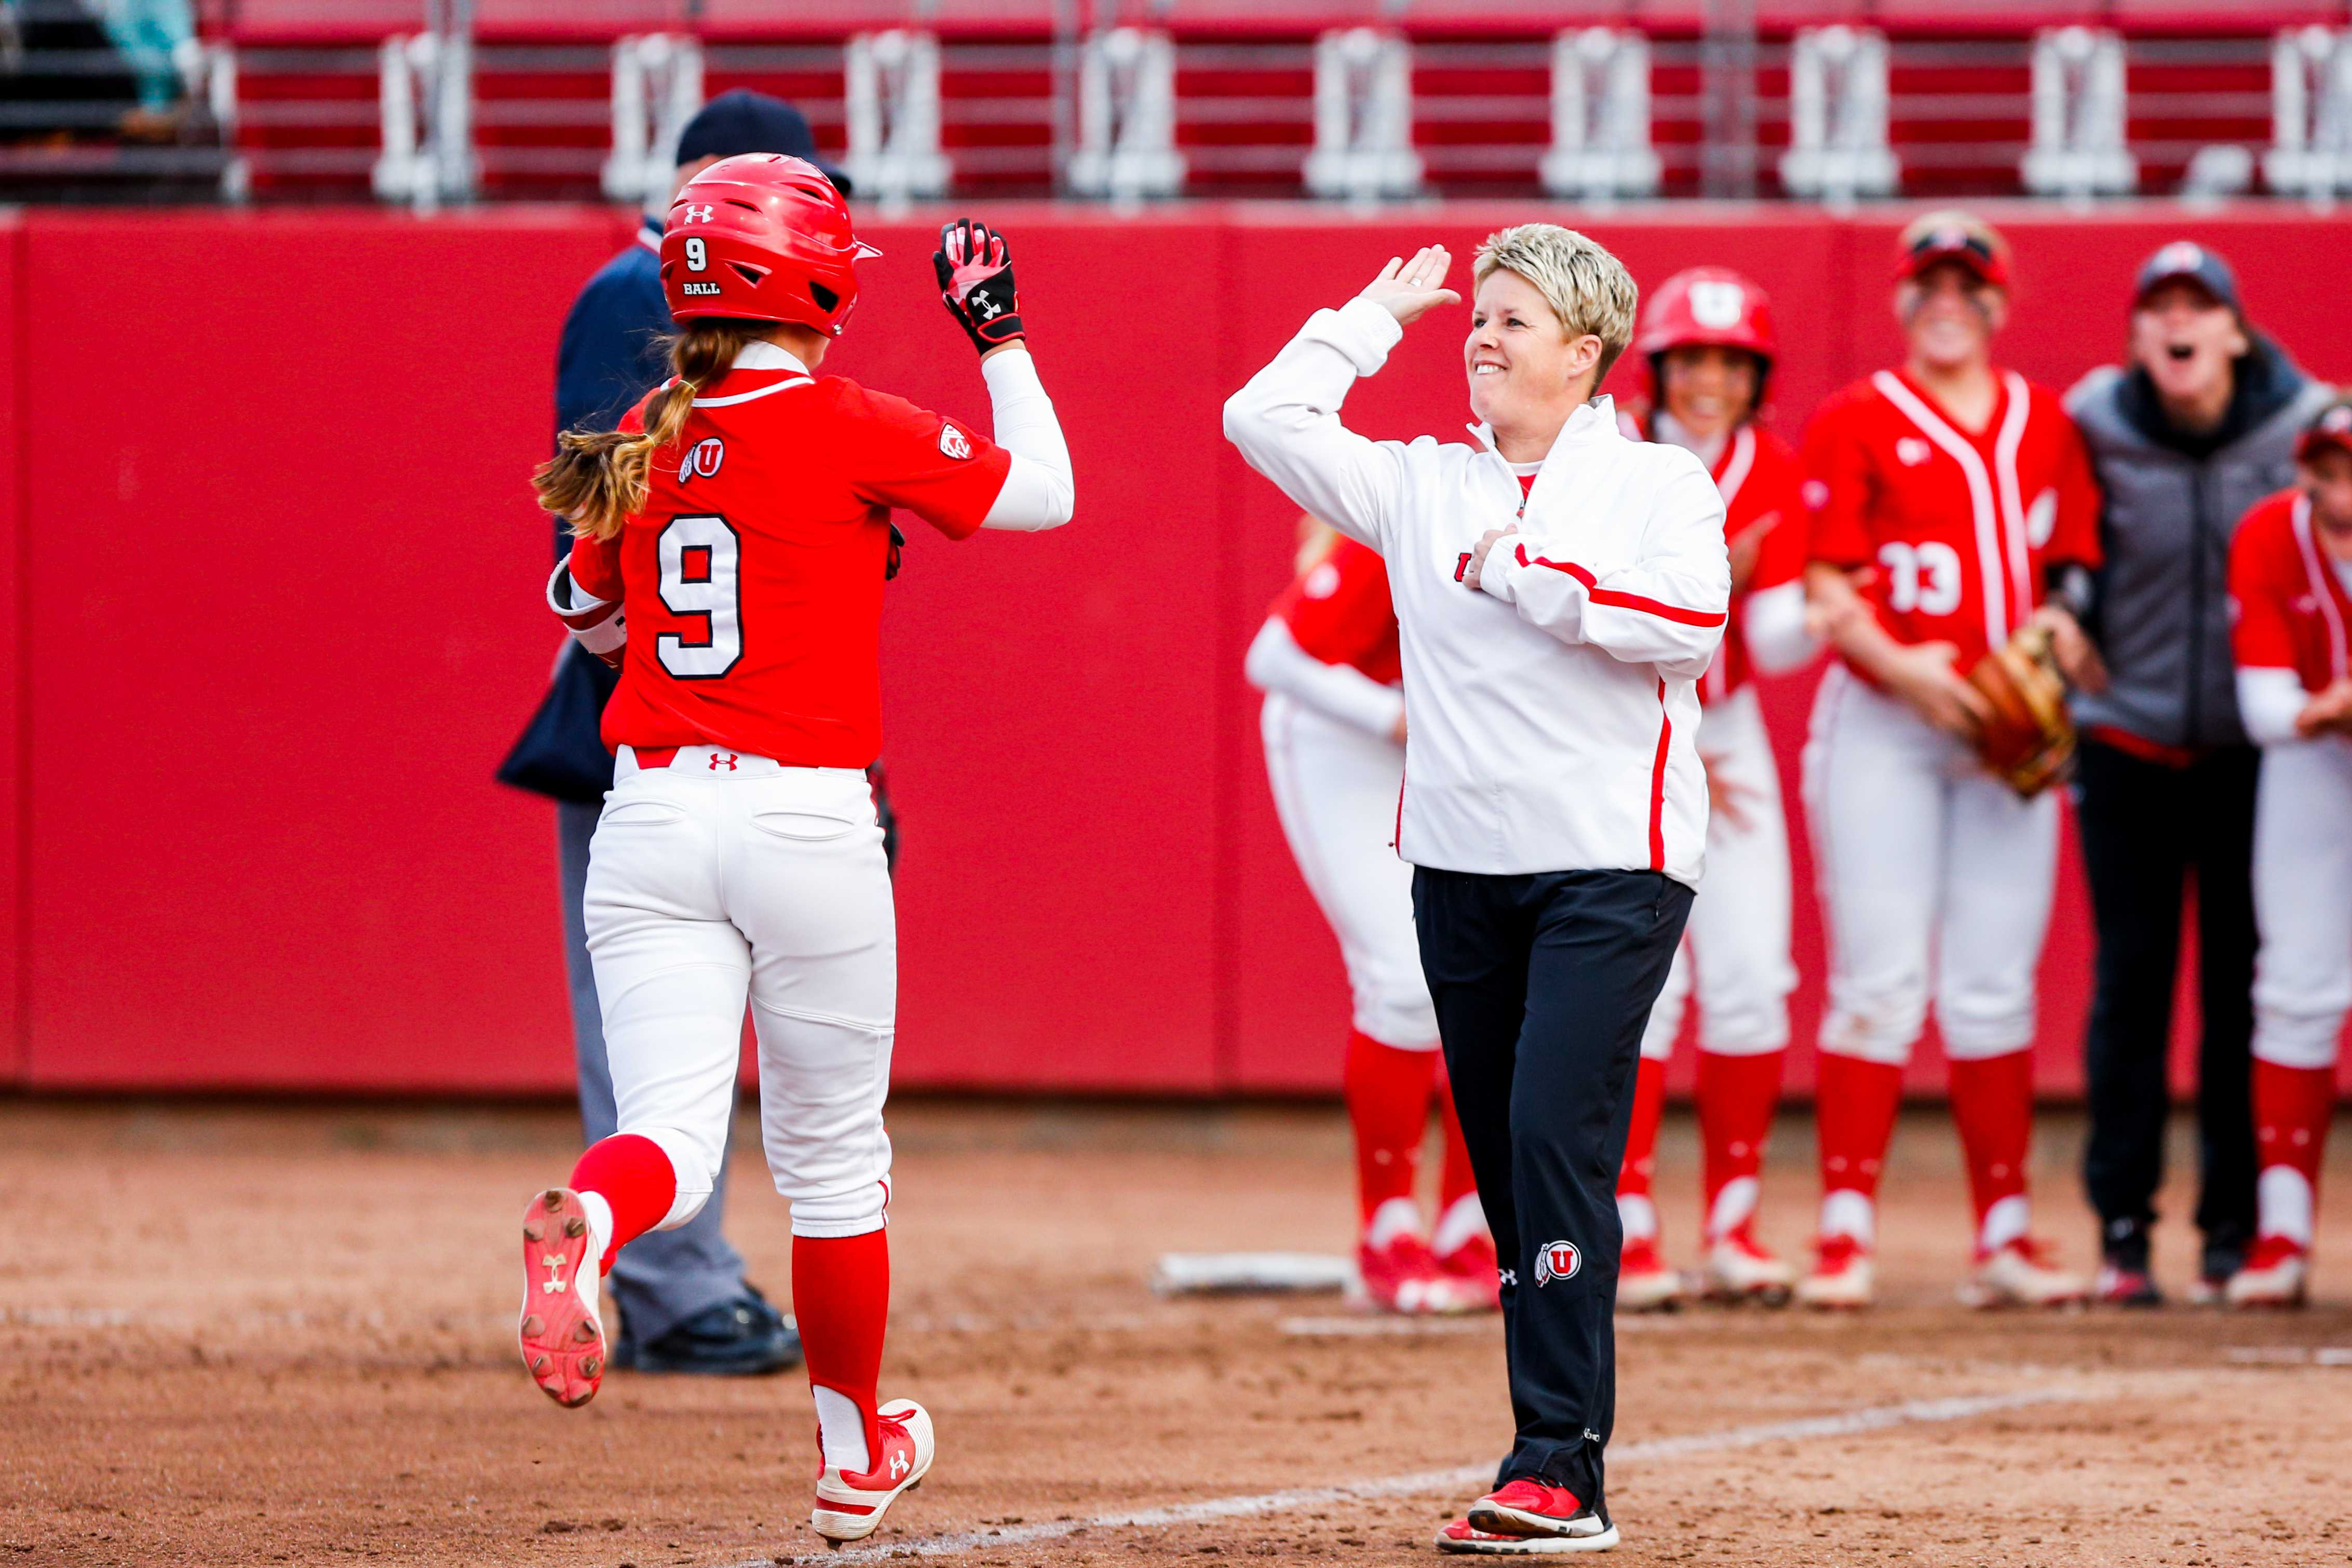 University of Utah Softball team celebrate after a homer by sophomore infielder Ryley Ball (9) during an NCAA Softball game vs the BYU Cougars at Dumke Family Softball Stadium in Salt Lake City, UT on Wednesday April 18, 2018.  (Photo by Curtis Lin | Daily Utah Chronicle)